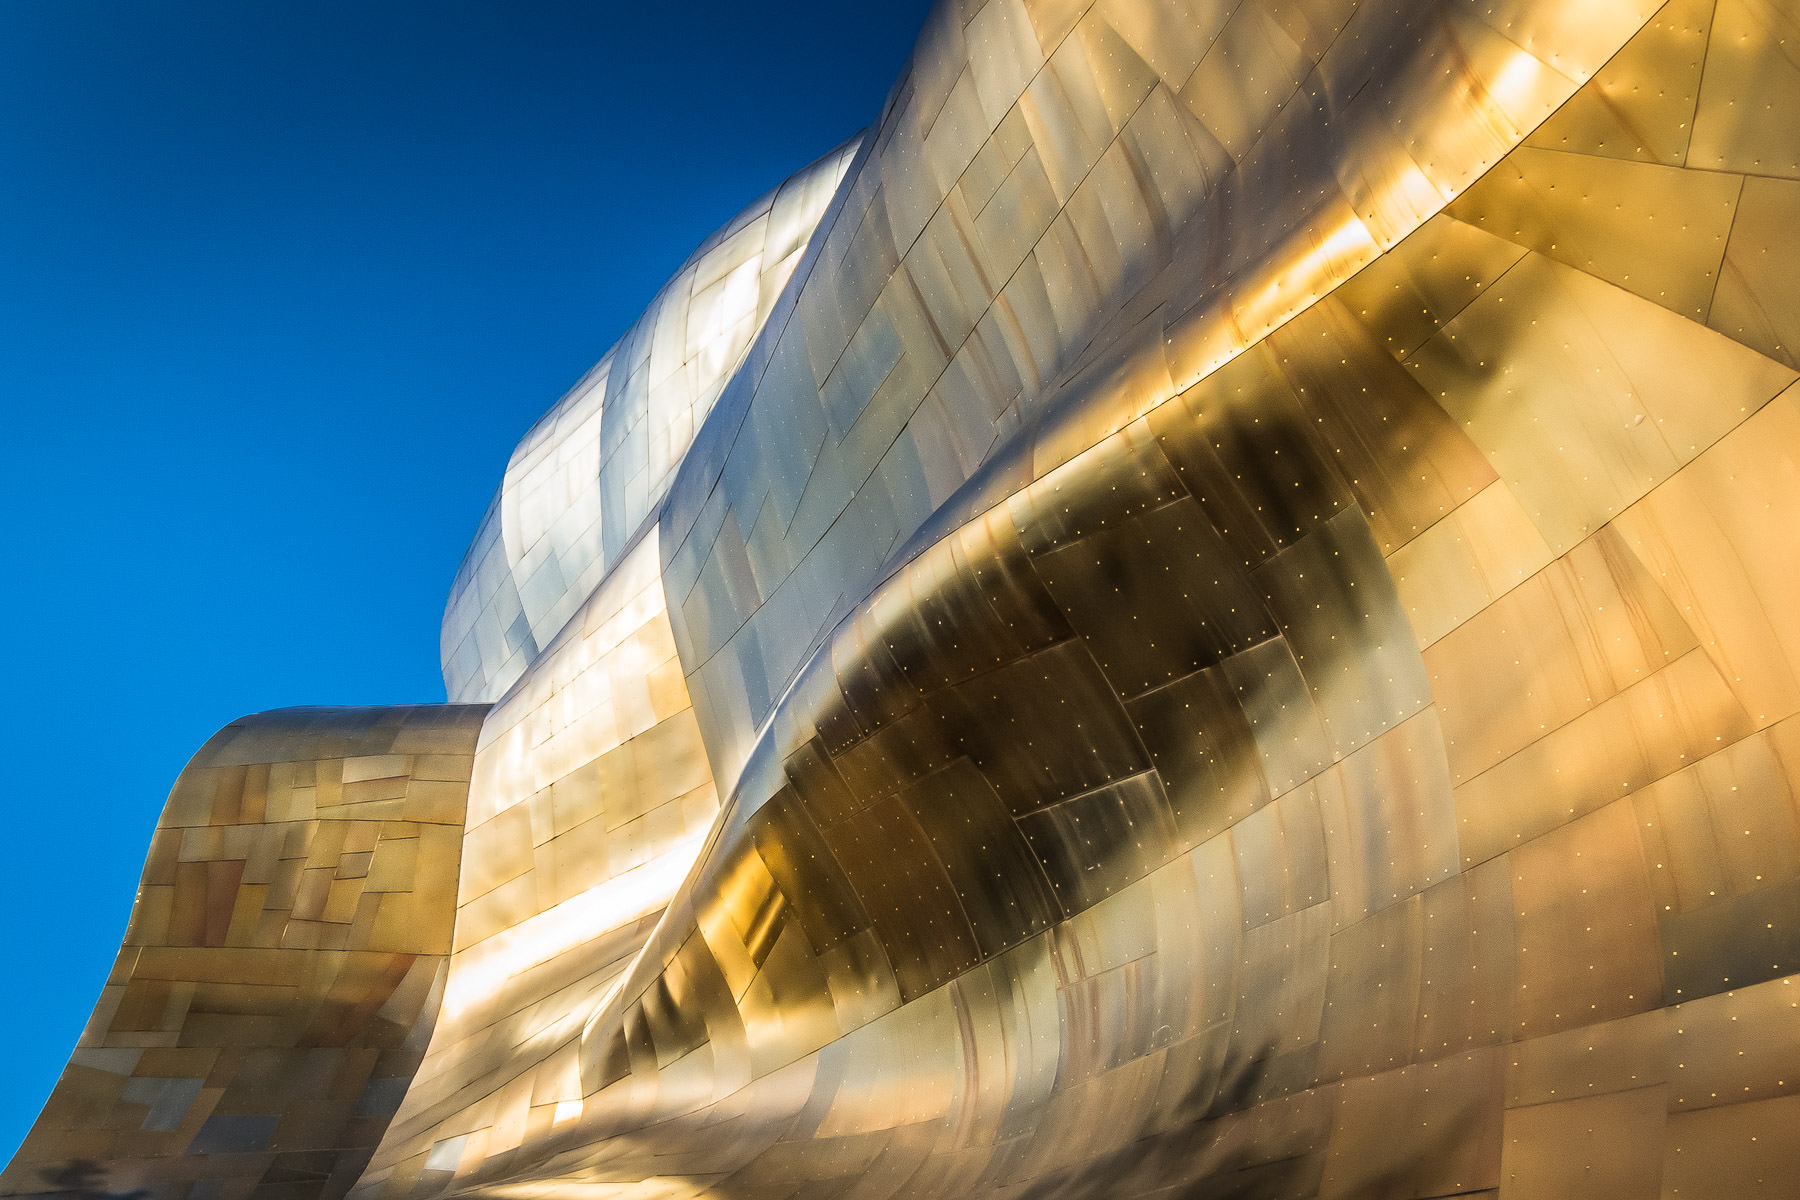 Architectural detail of the Frank Gehry-designed Experience Music Project, Seattle.